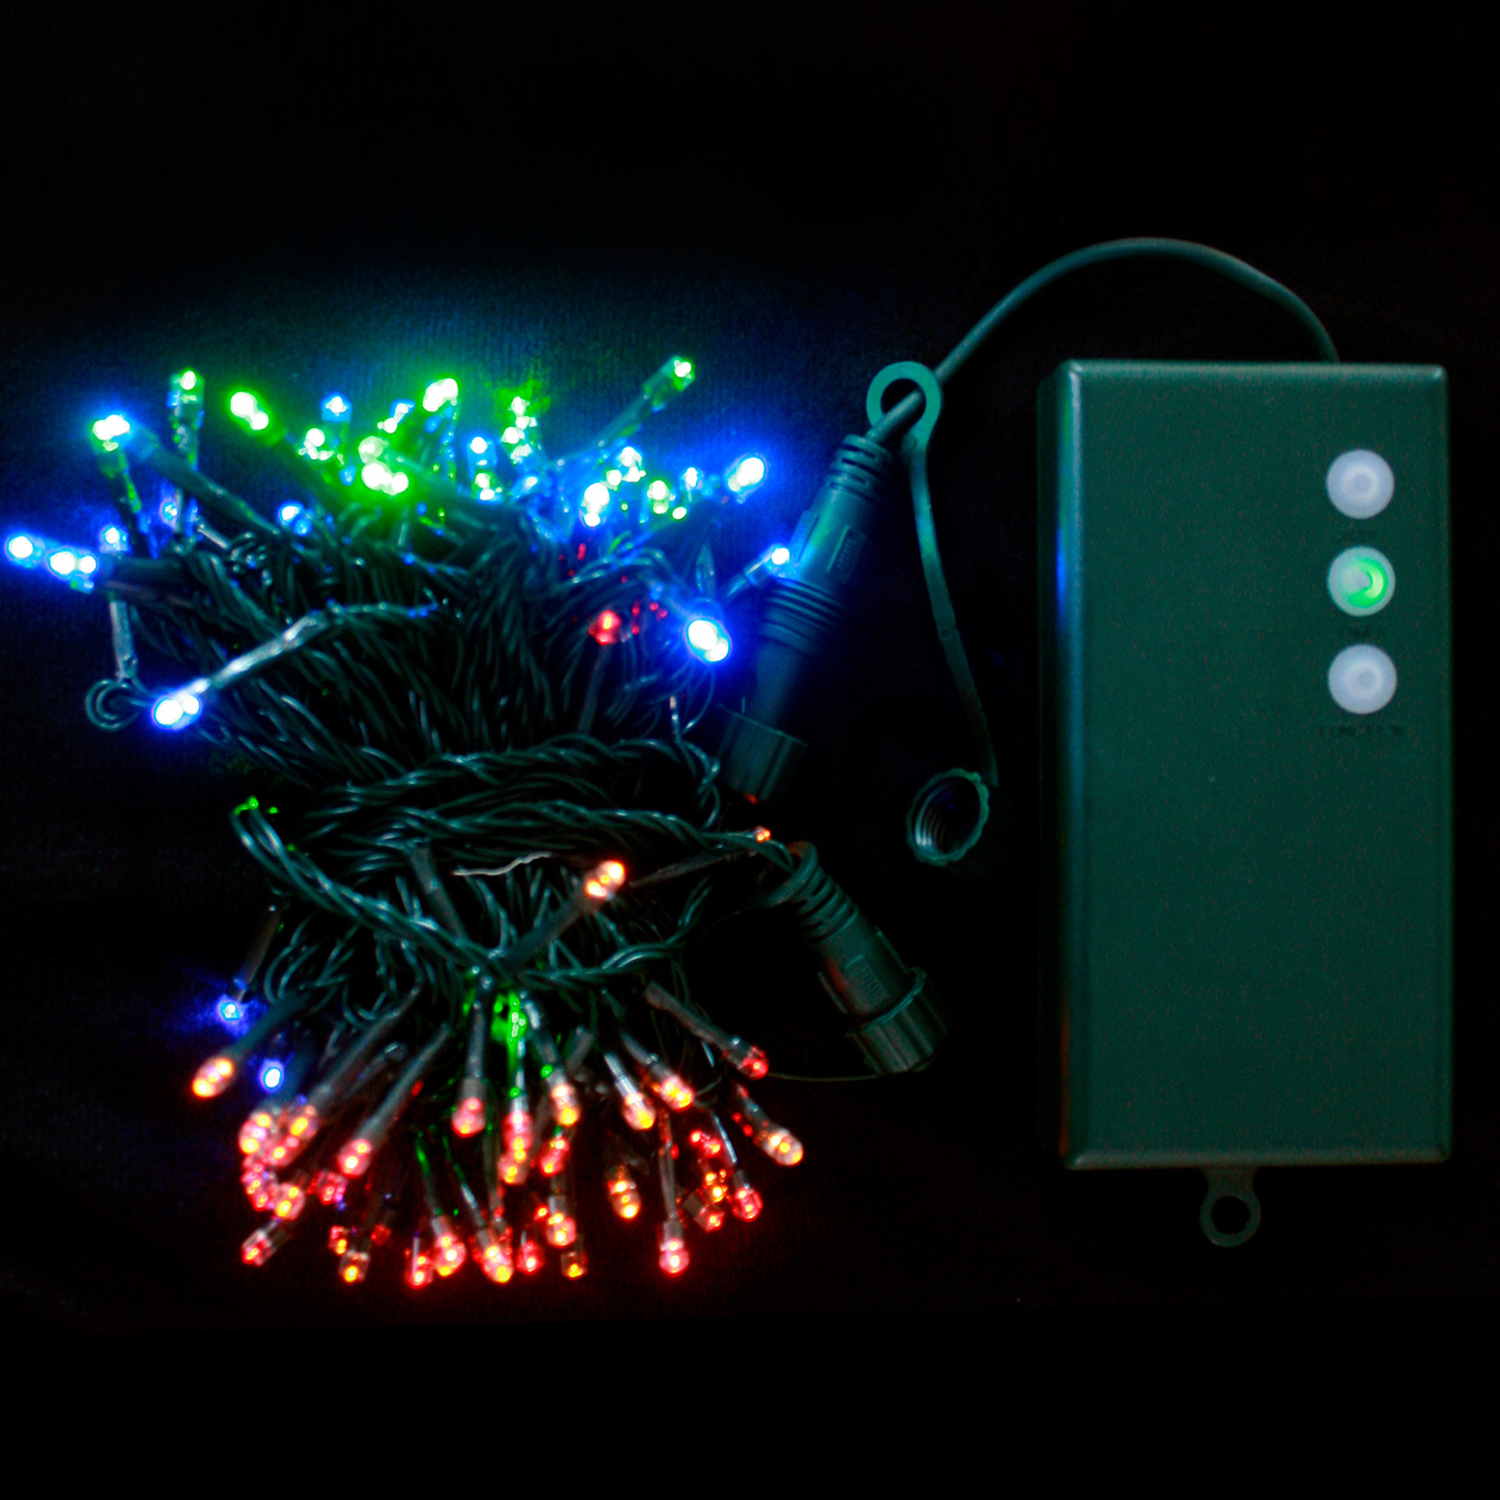 String Of Christmas Lights Image : Lights.com String Lights Christmas Lights Multicolor 100 LED Connectable Battery String Lights